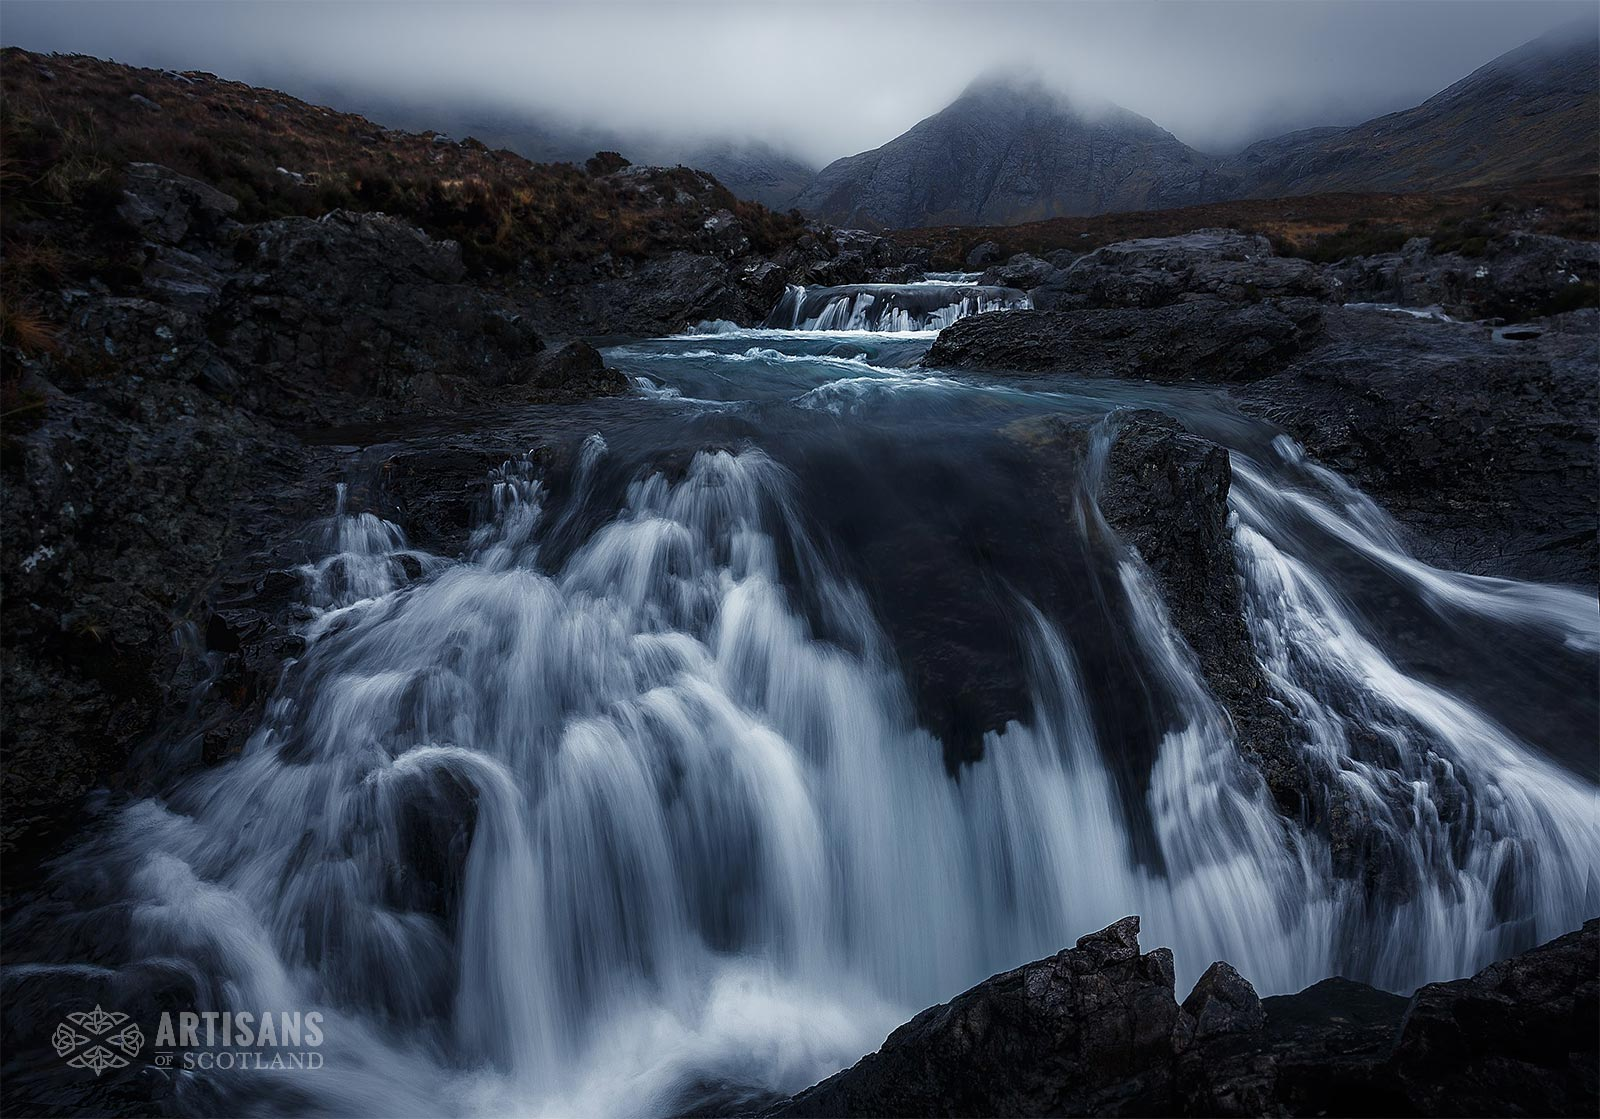 Fairy Pools Isle of Skye - The most beautiful places in Scotland.